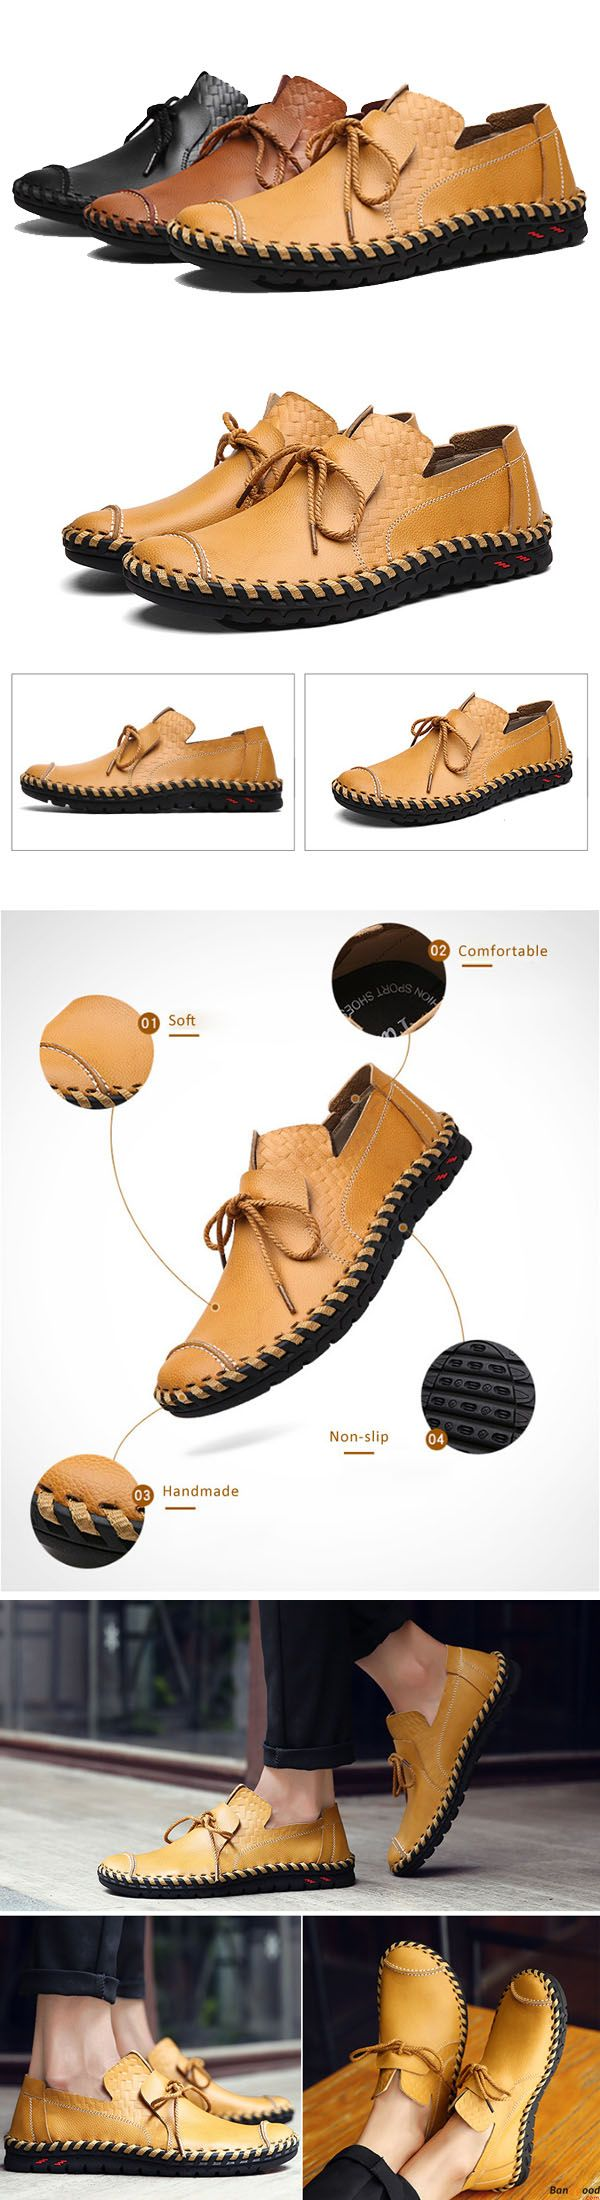 US$49.99+ Free Shipping. 3 colors available.  Men loafers, casual comfortable shoes,  oxford shoes, boots, Fashion and chic, casual shoes, men's flats, oxford boots,leather short boots,loafers, casual oxford shoes,slip on  men's style, chic style, fashion style.  Shop at banggood with super affordable price. #men'sshoes#men'sstyle#chic#style#fashion#style#wintershoes#casual#shoes#casualshoes#boots#oxfordshoes#loafers#slipon#flats